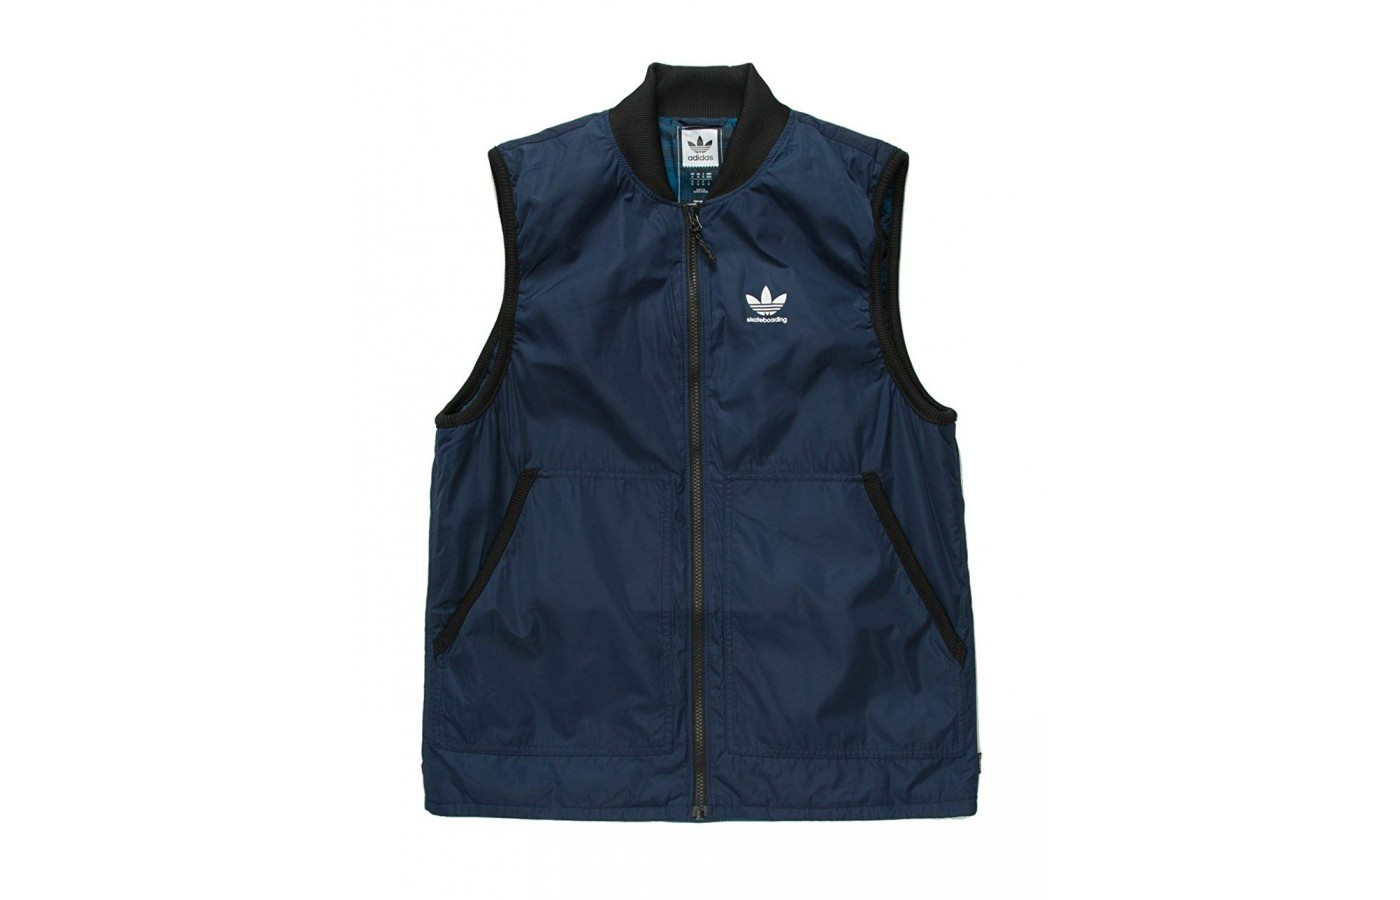 Adidas Meade front